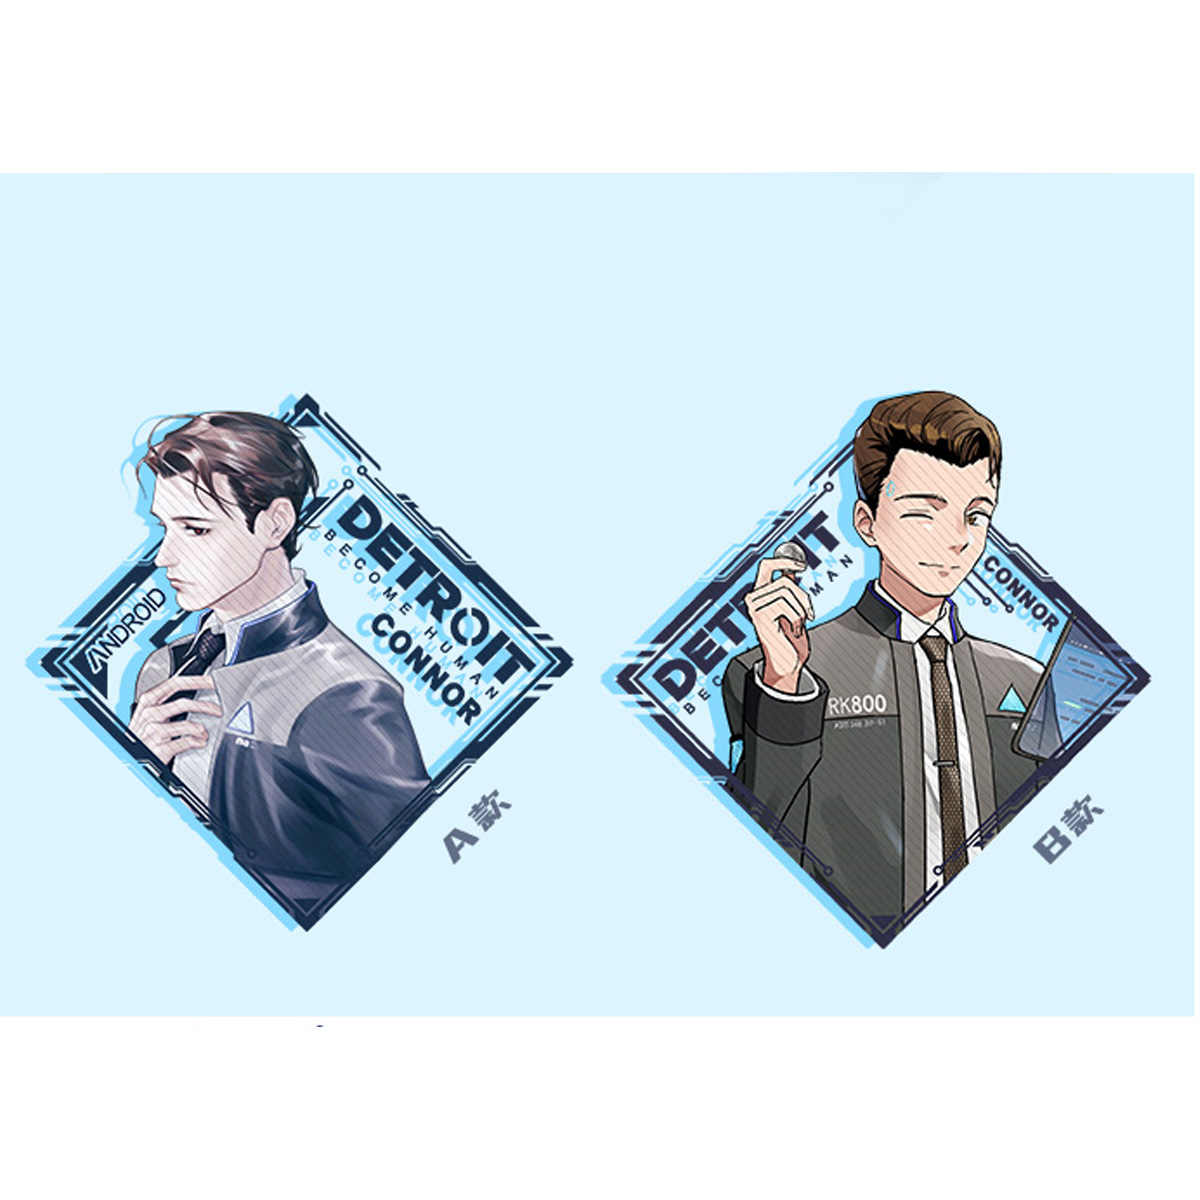 Detroit: Se Tornar Humano Connor Figura Acrílico Keychain Chaveiro Strap 2-sided 7cm